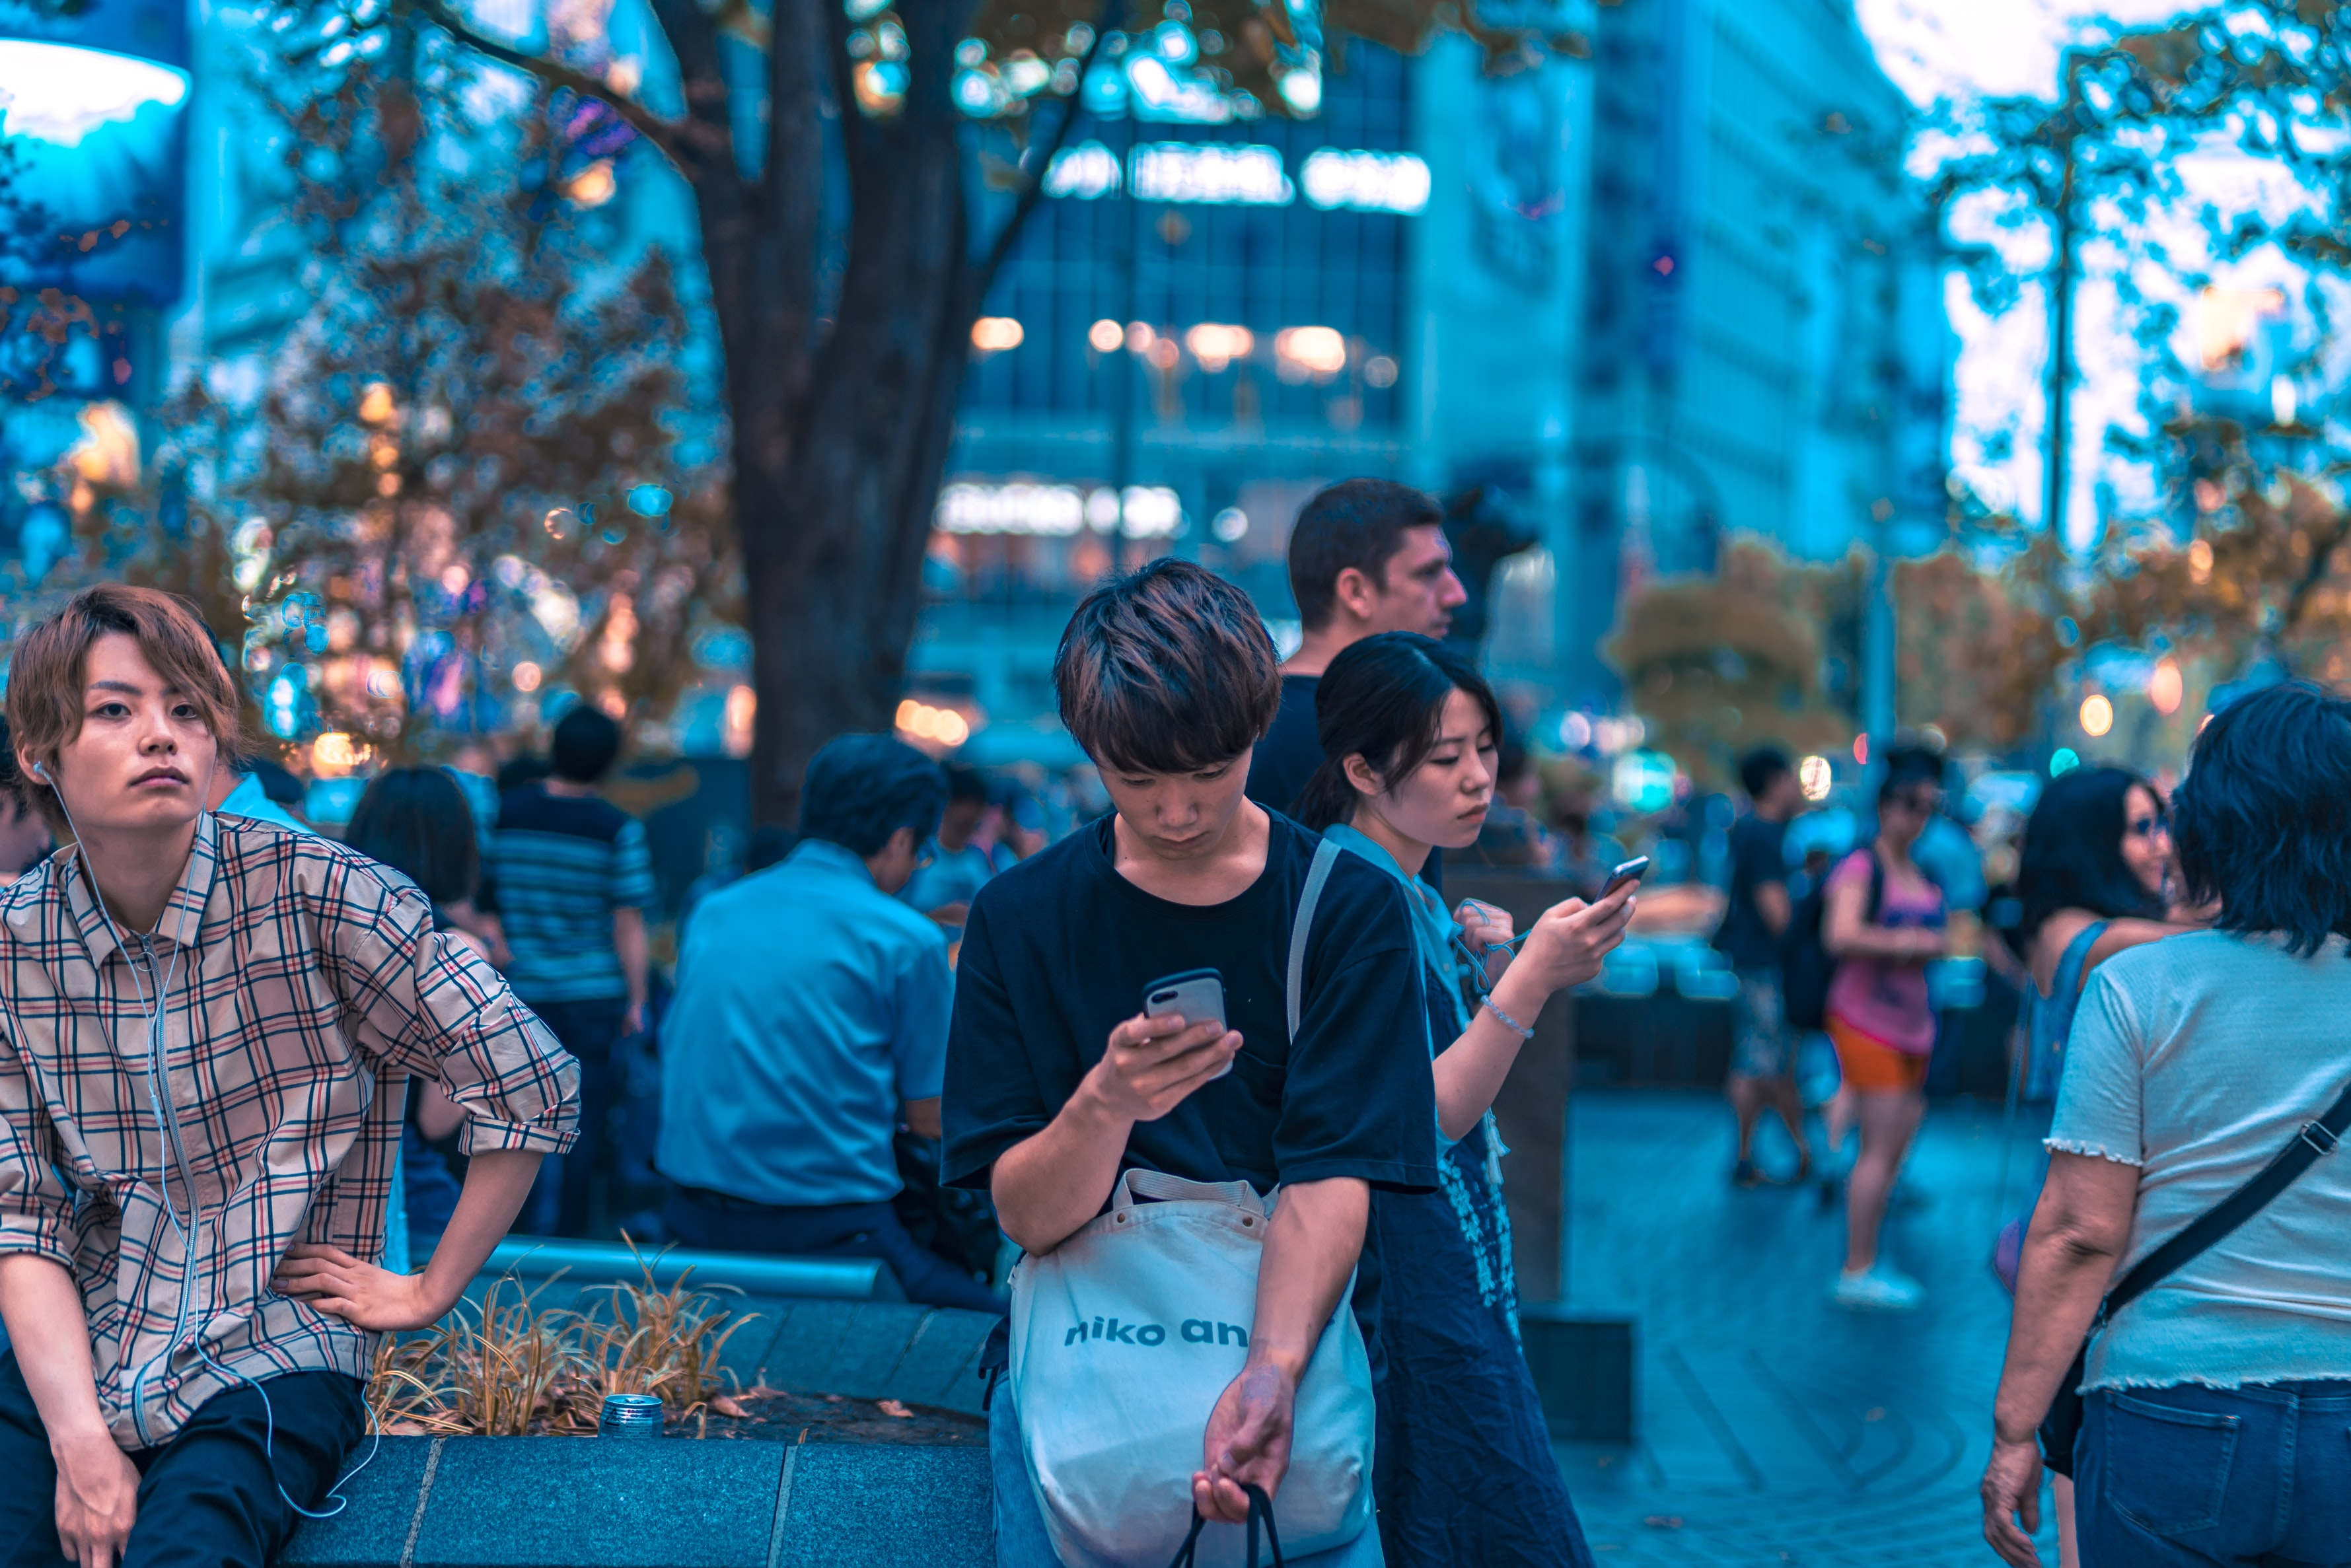 selective focus photography of man sitting on concrete chair while holding smartphone